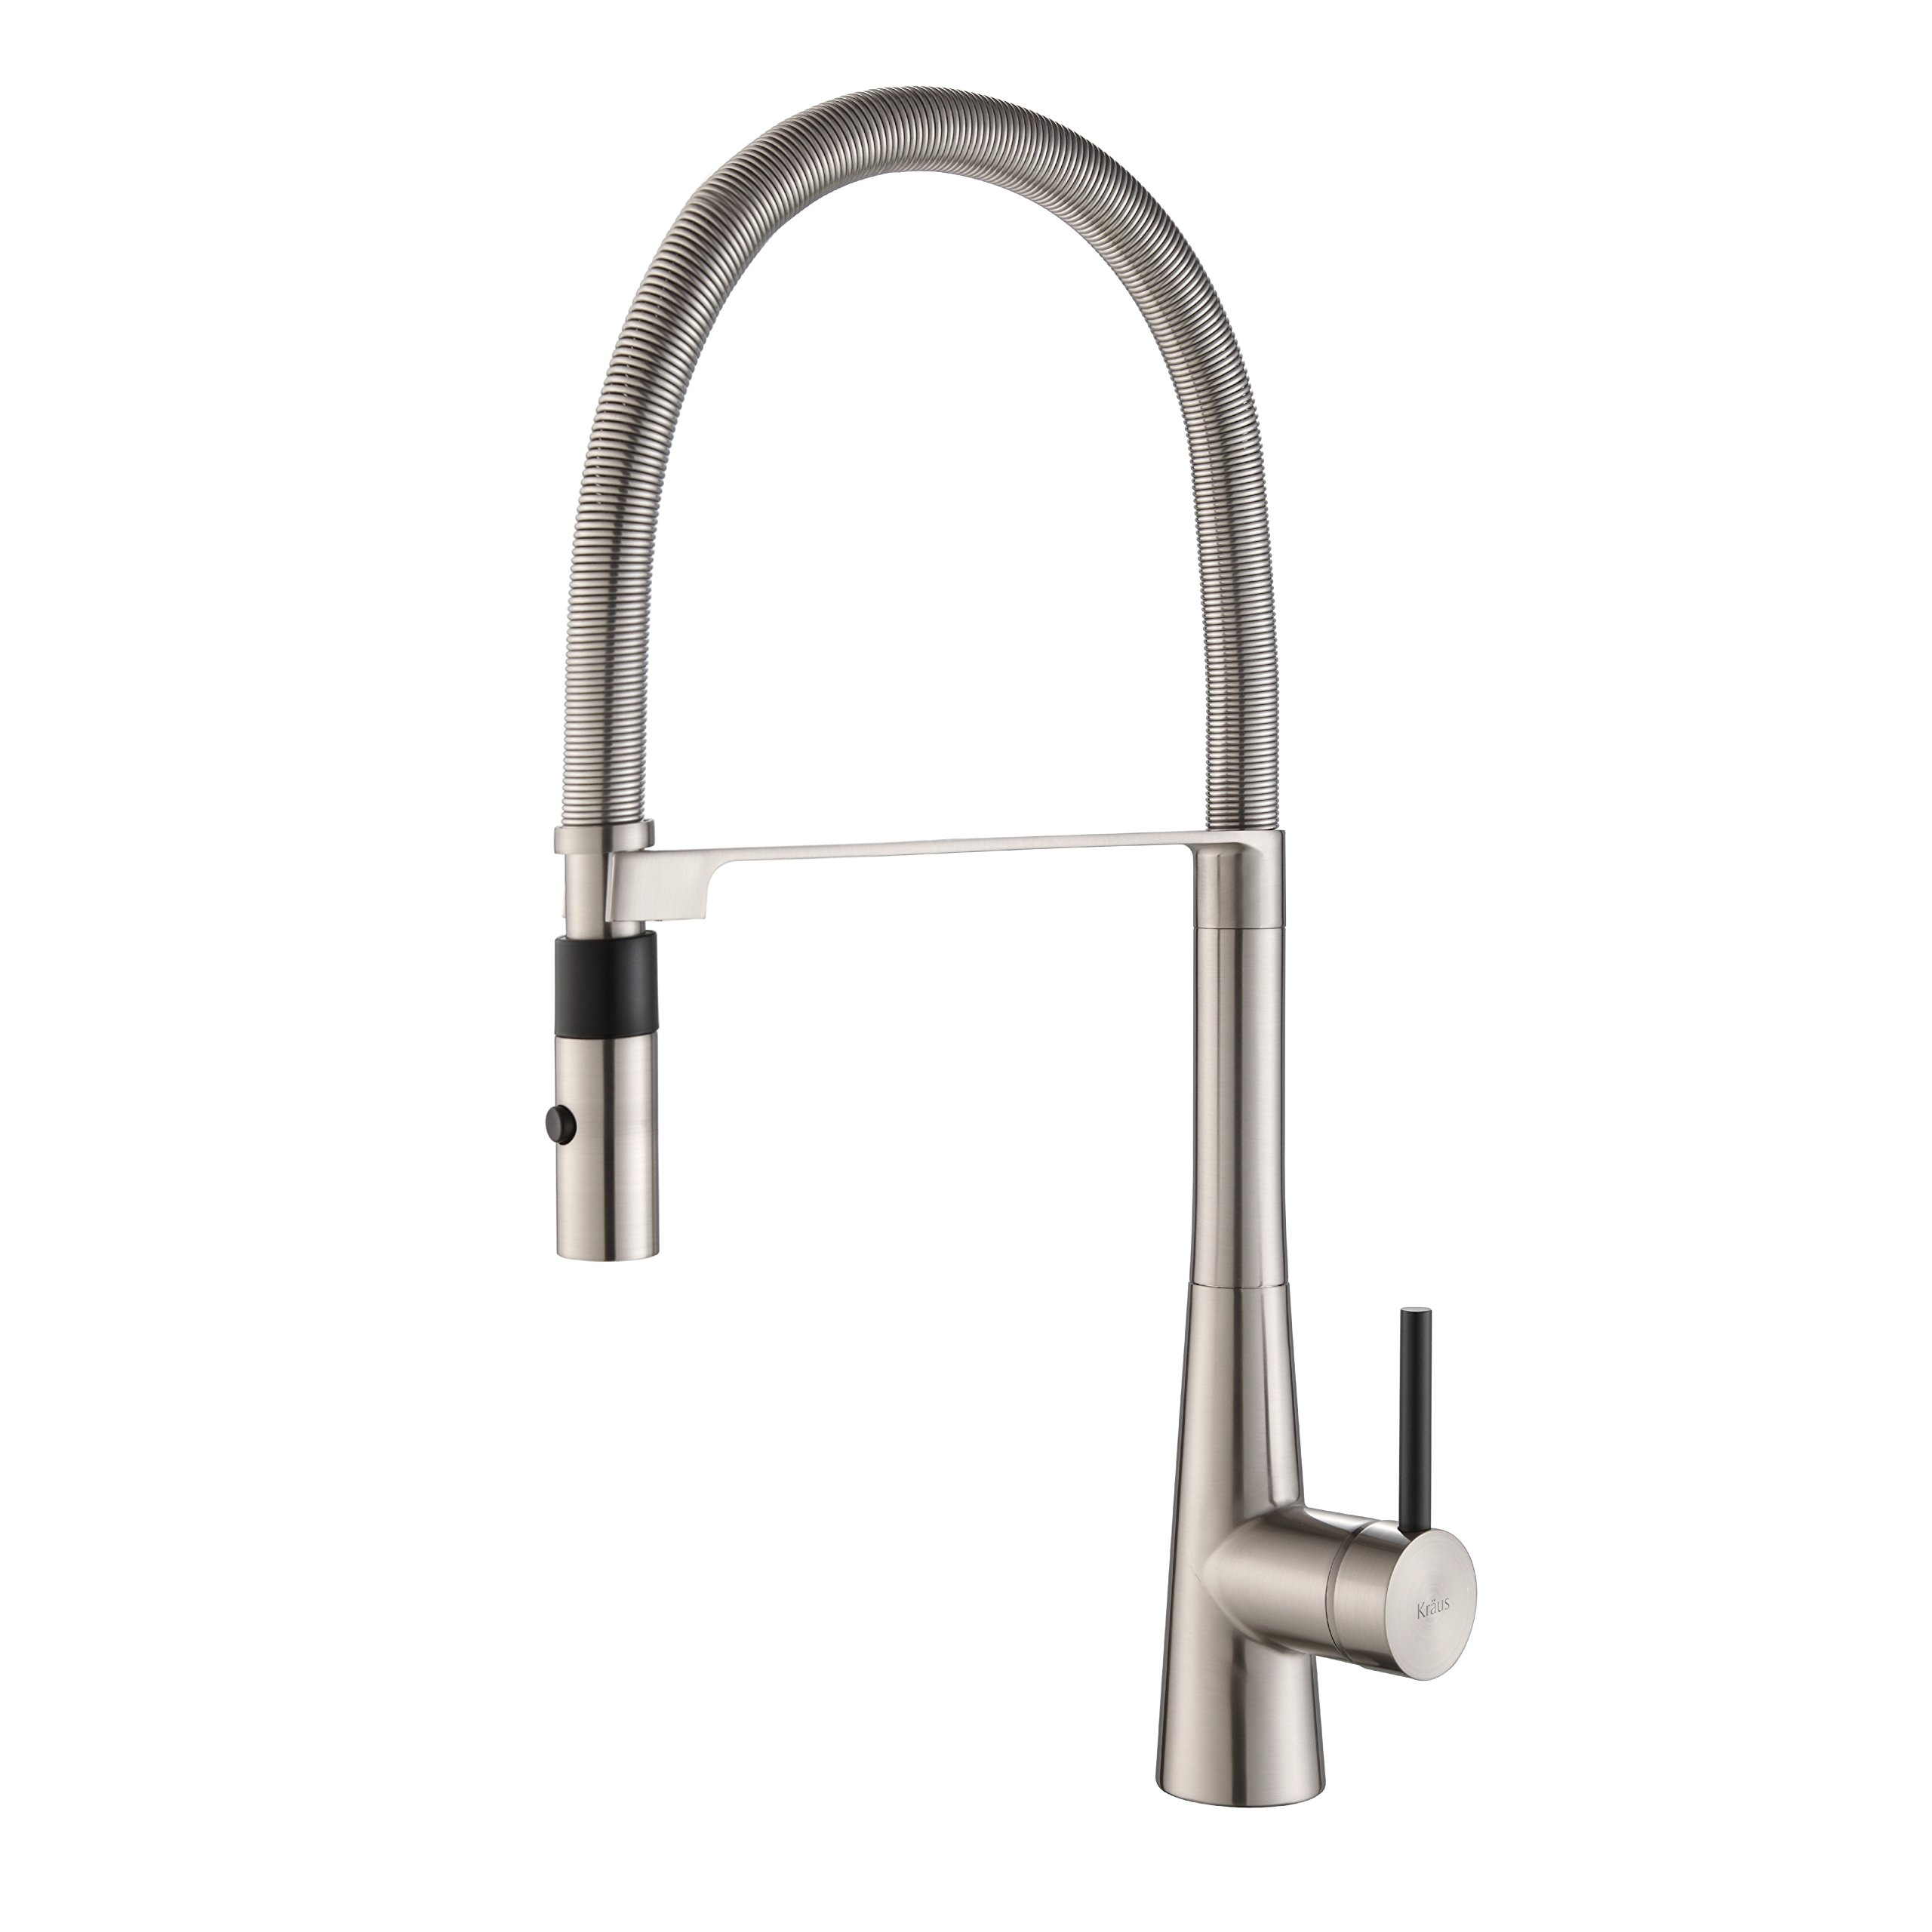 Kraus Kpf-2730Ss Modern Crespo Single Lever Commercial Style Kitchen Faucet W.. 1